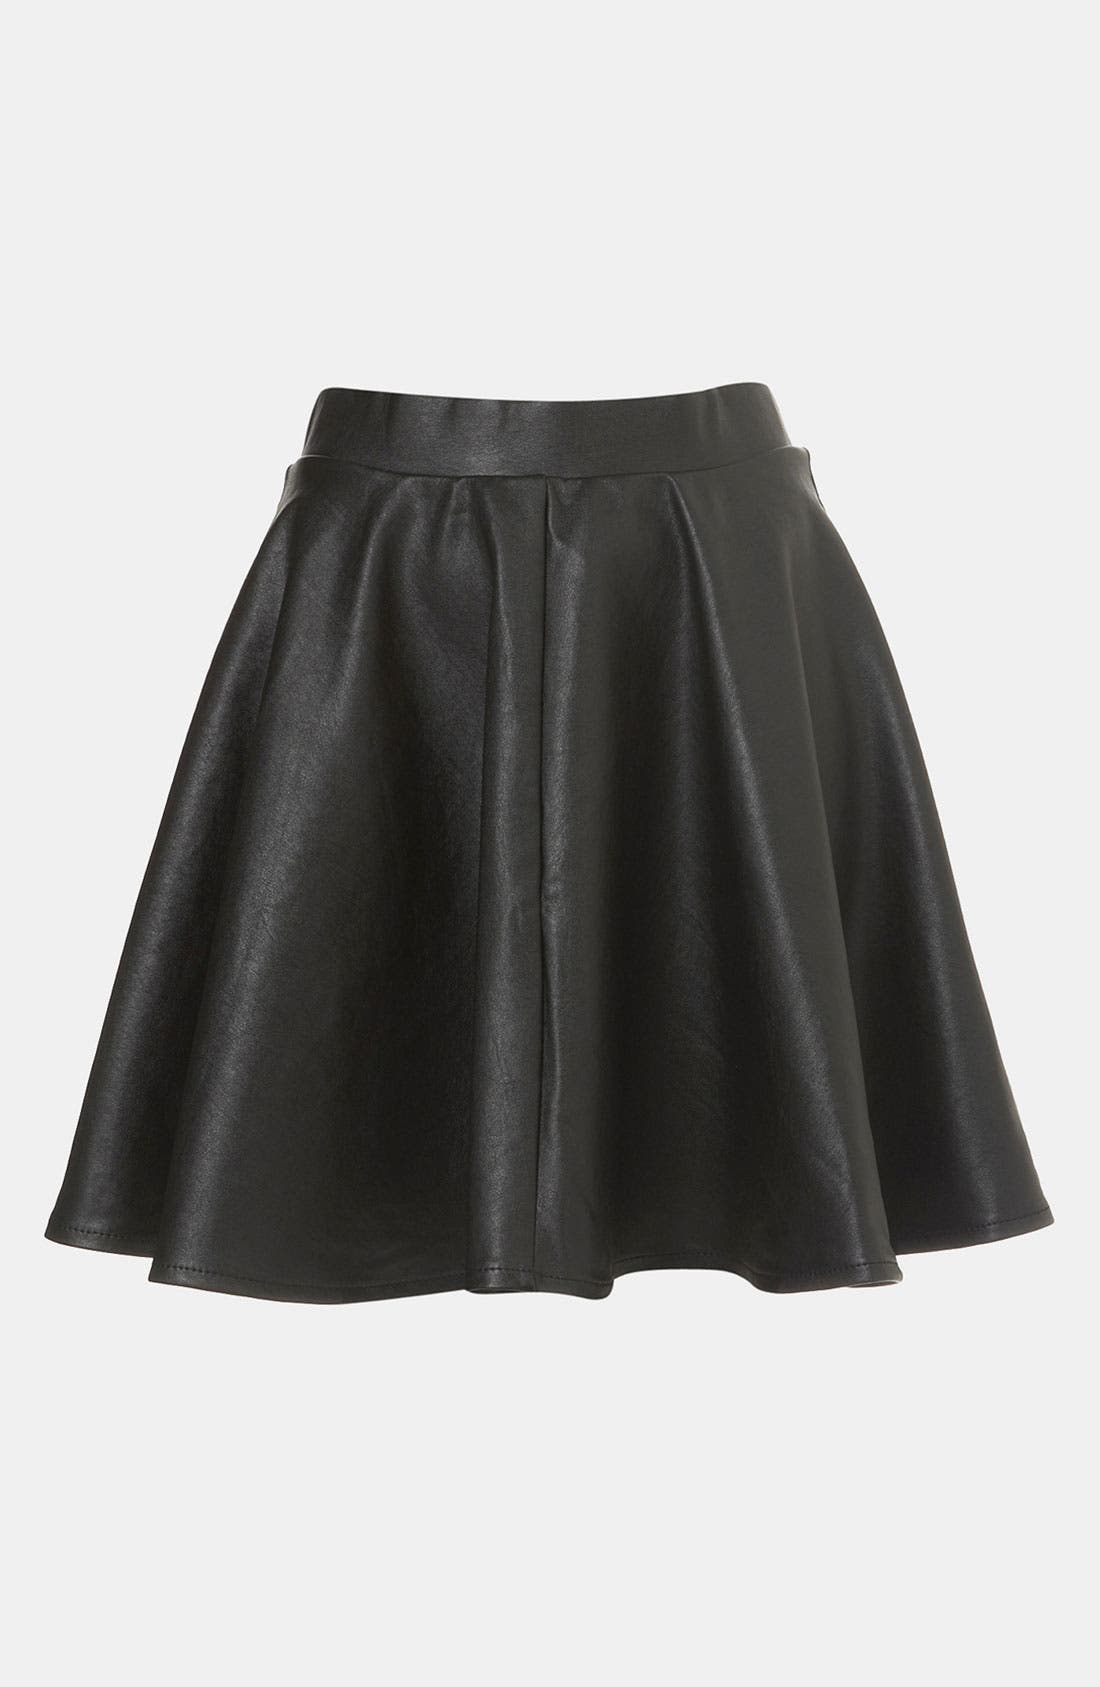 Main Image - Topshop 'Andie' Faux Leather Skater Skirt